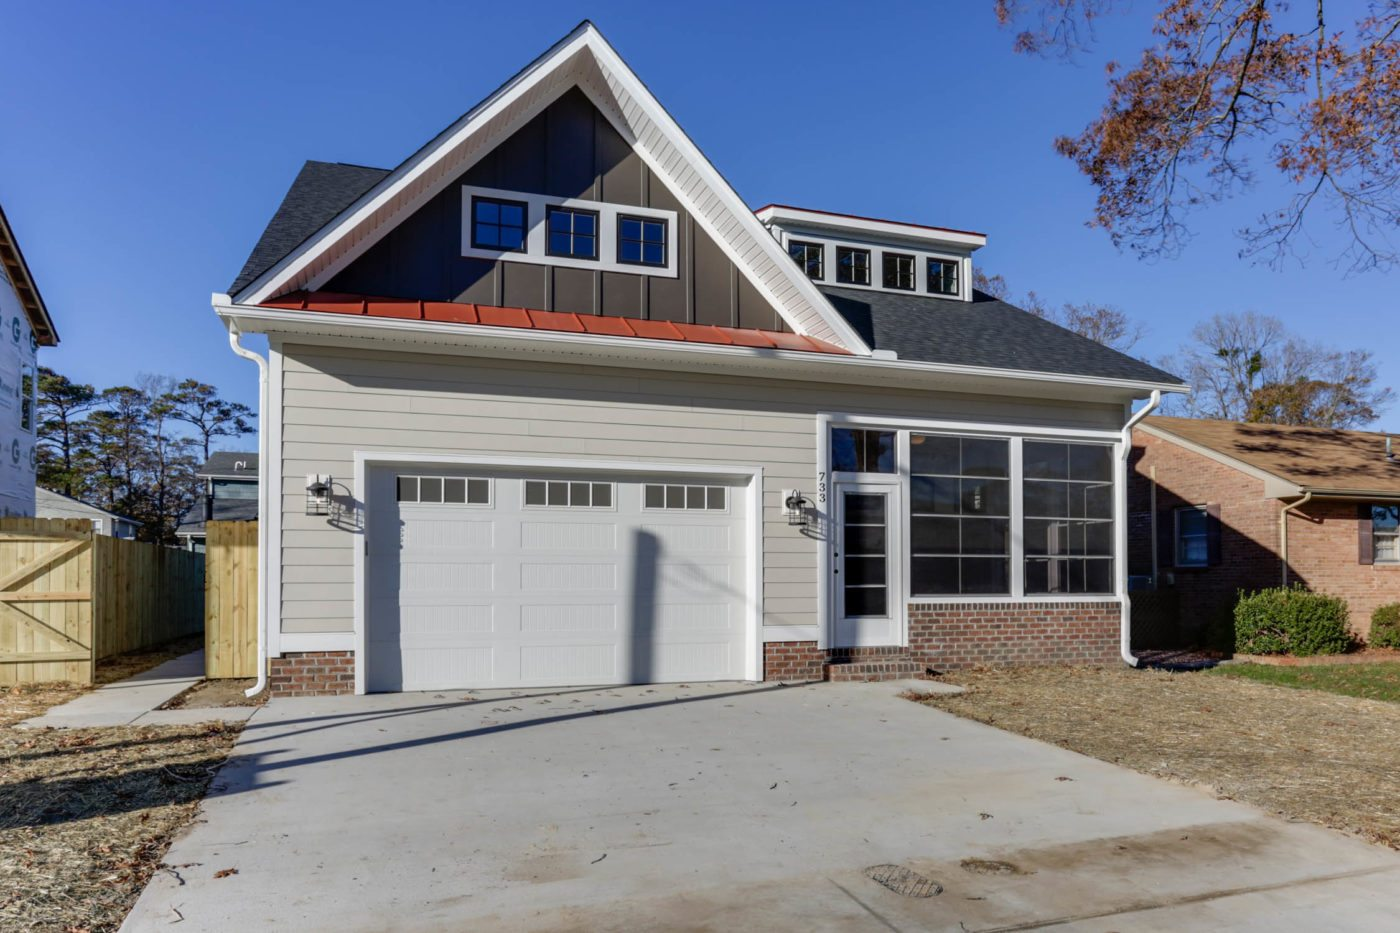 New home construction remodeling contractor virginia for 530 terrace ave virginia beach